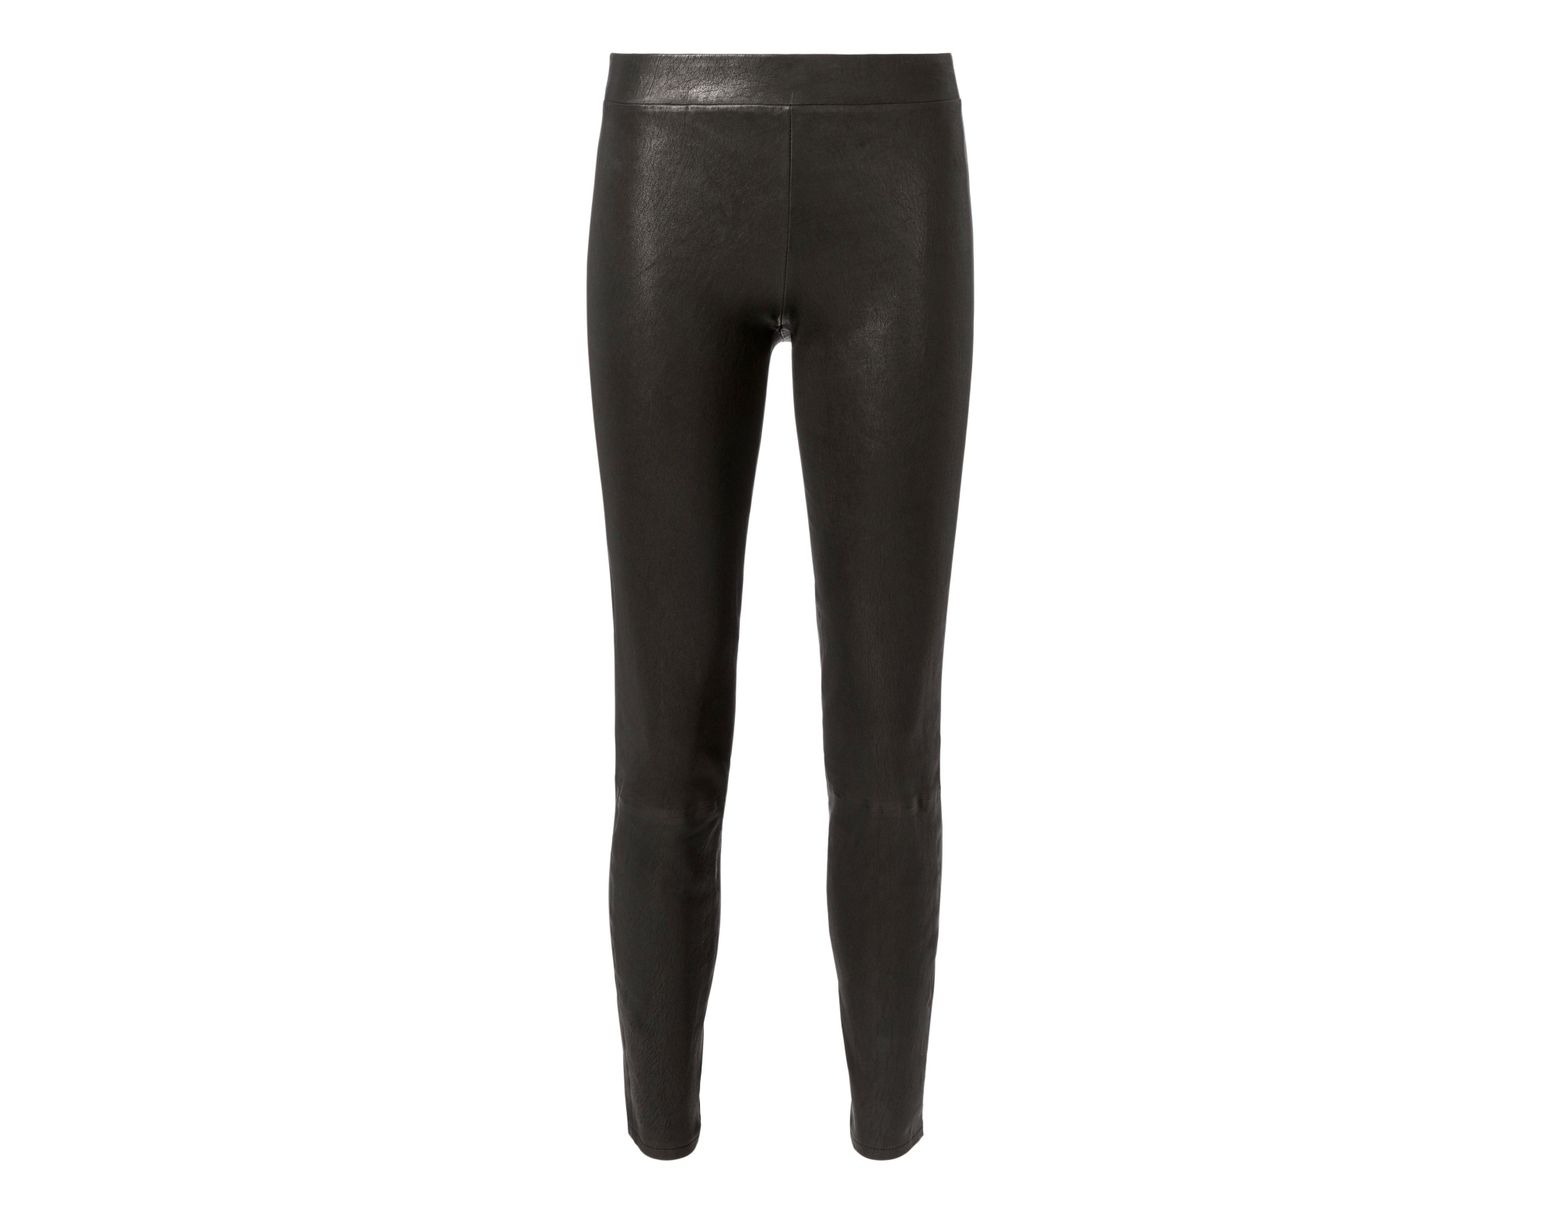 d40bb19803c199 L'Agence Leather Pull-on Pants in Black - Lyst